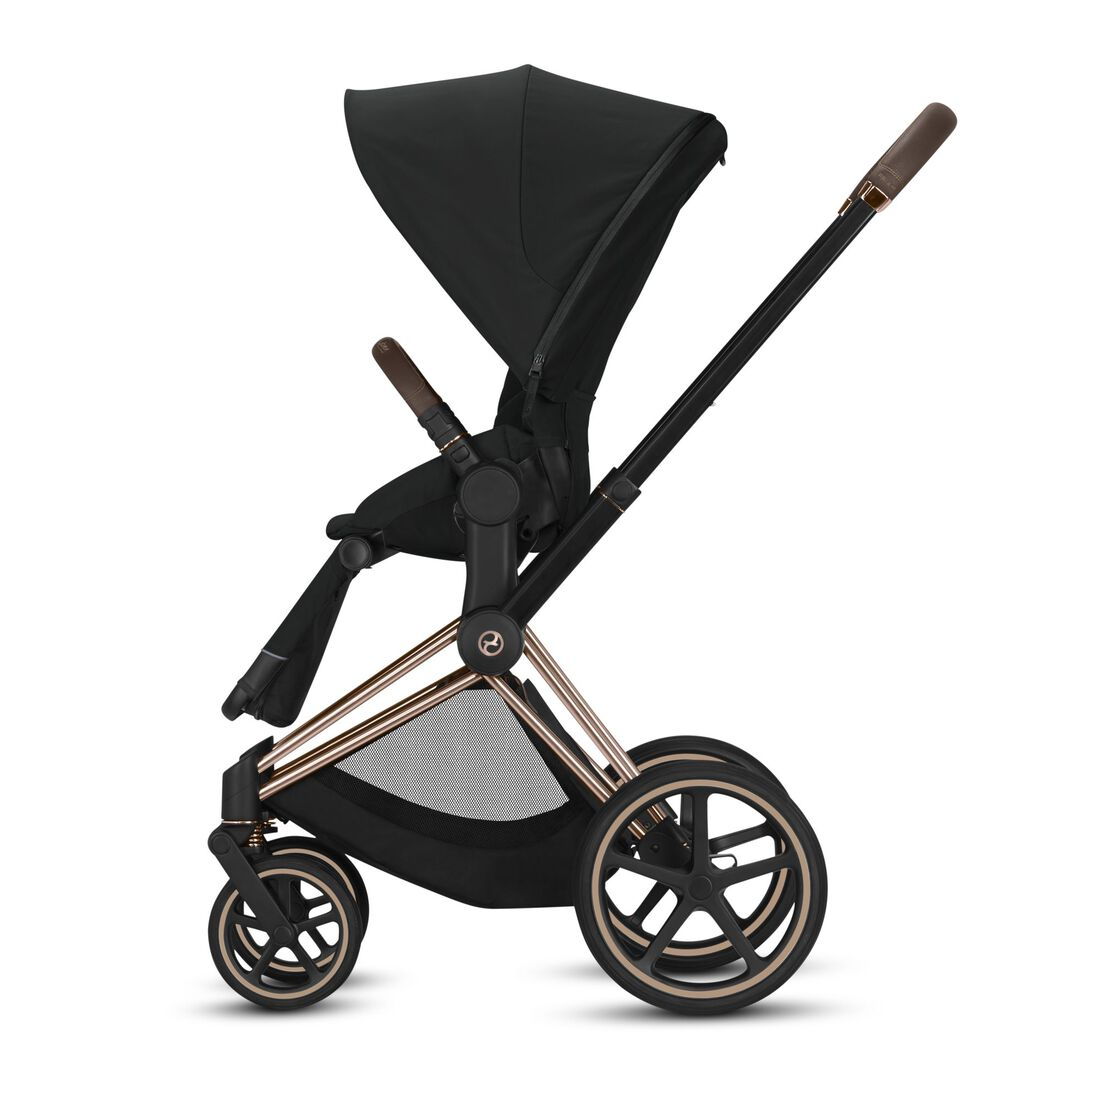 PRIAM Frame - 4-IN-1 Travel System